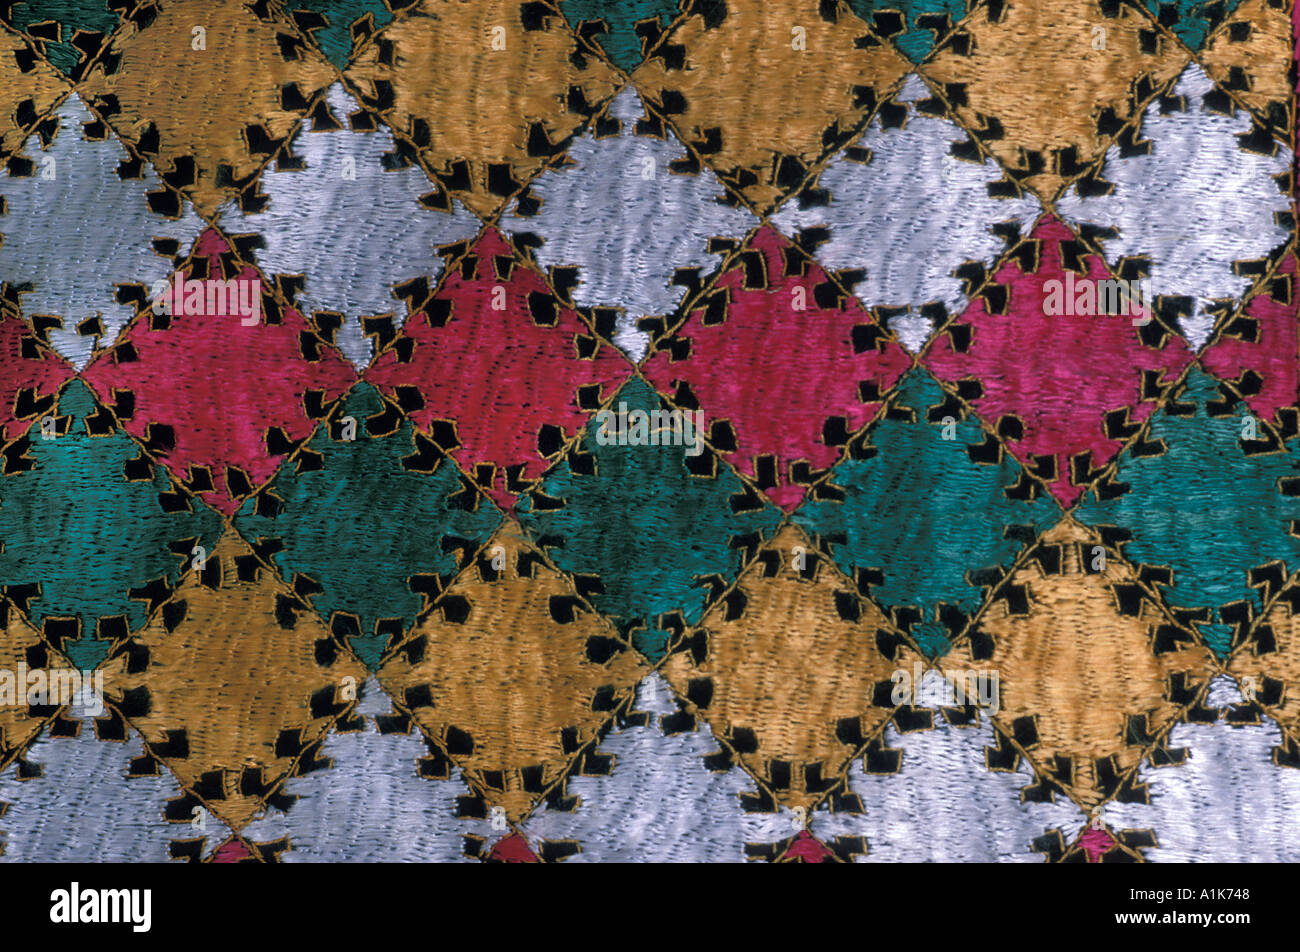 Silk embroidered textiles from The Pakistan and China region of the Karakoram Highway - Stock Image